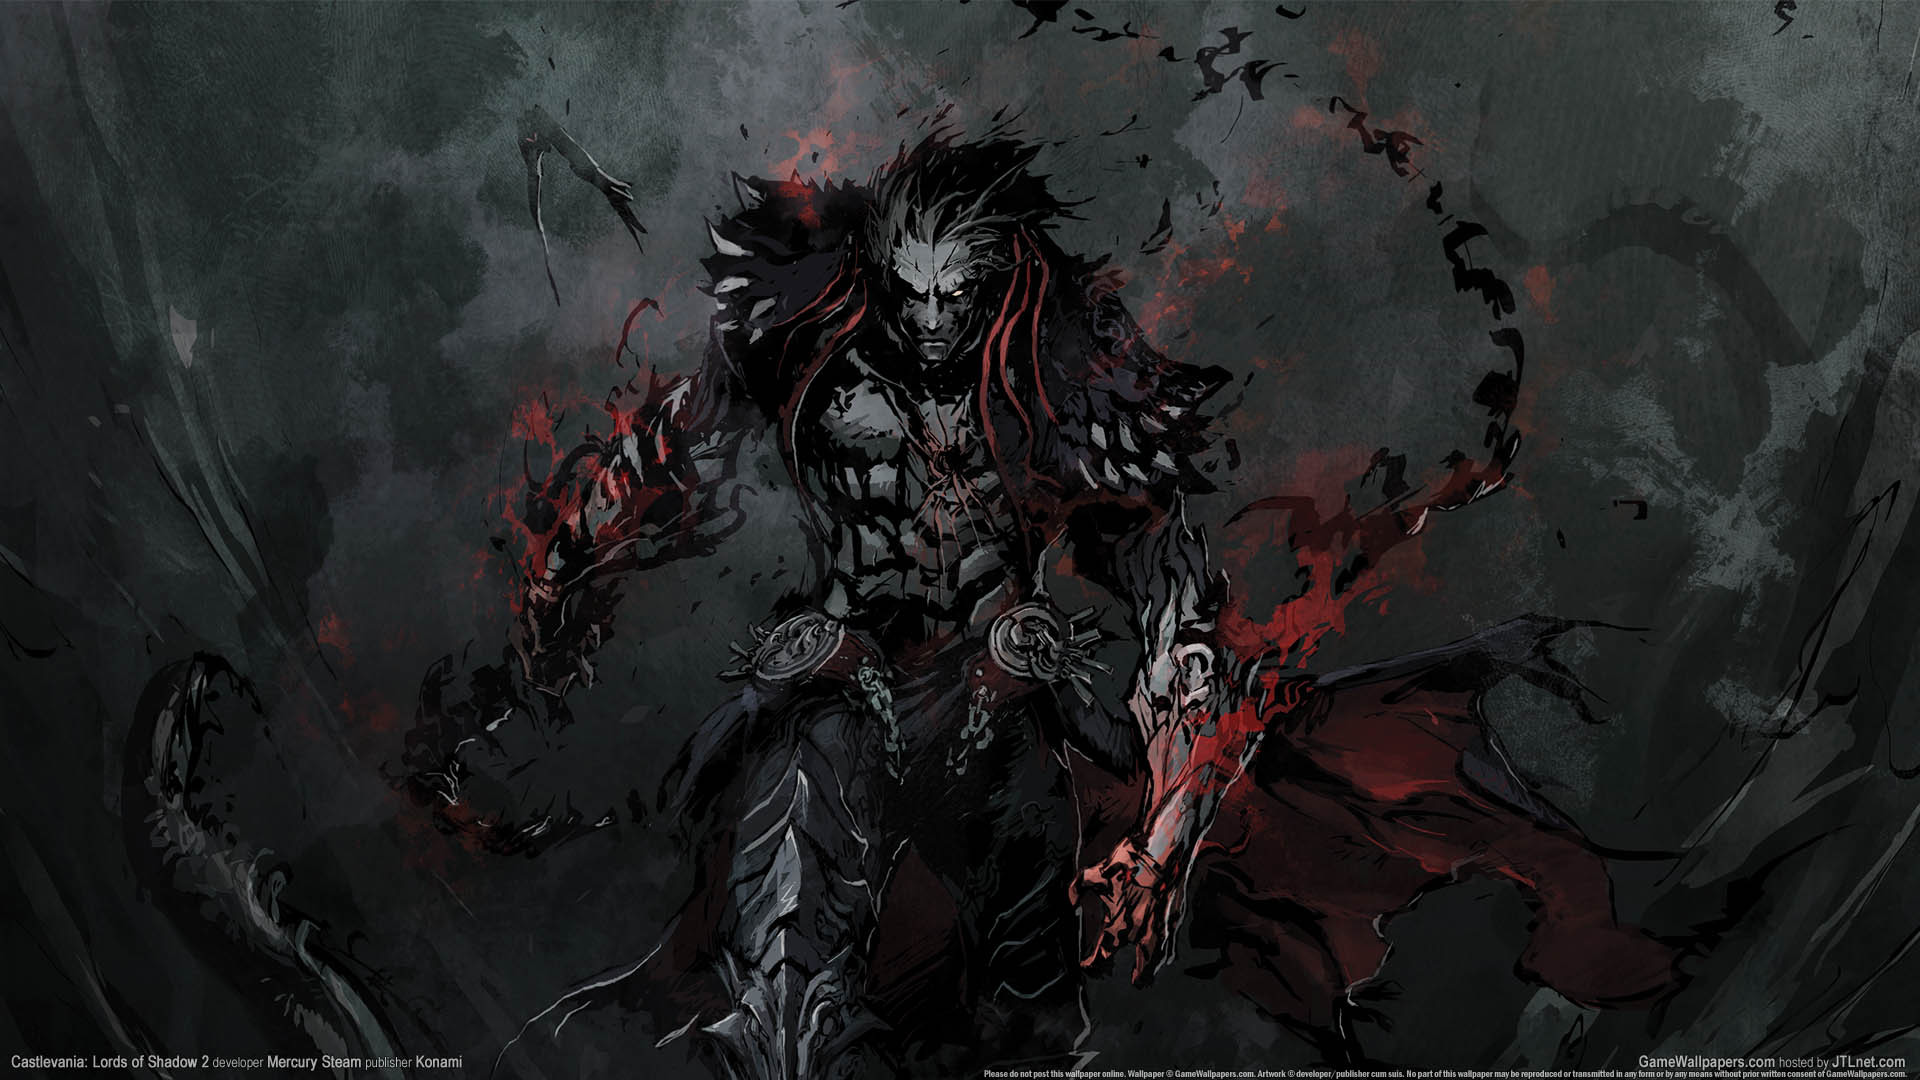 27937 download wallpaper Games, Castlevania screensavers and pictures for free